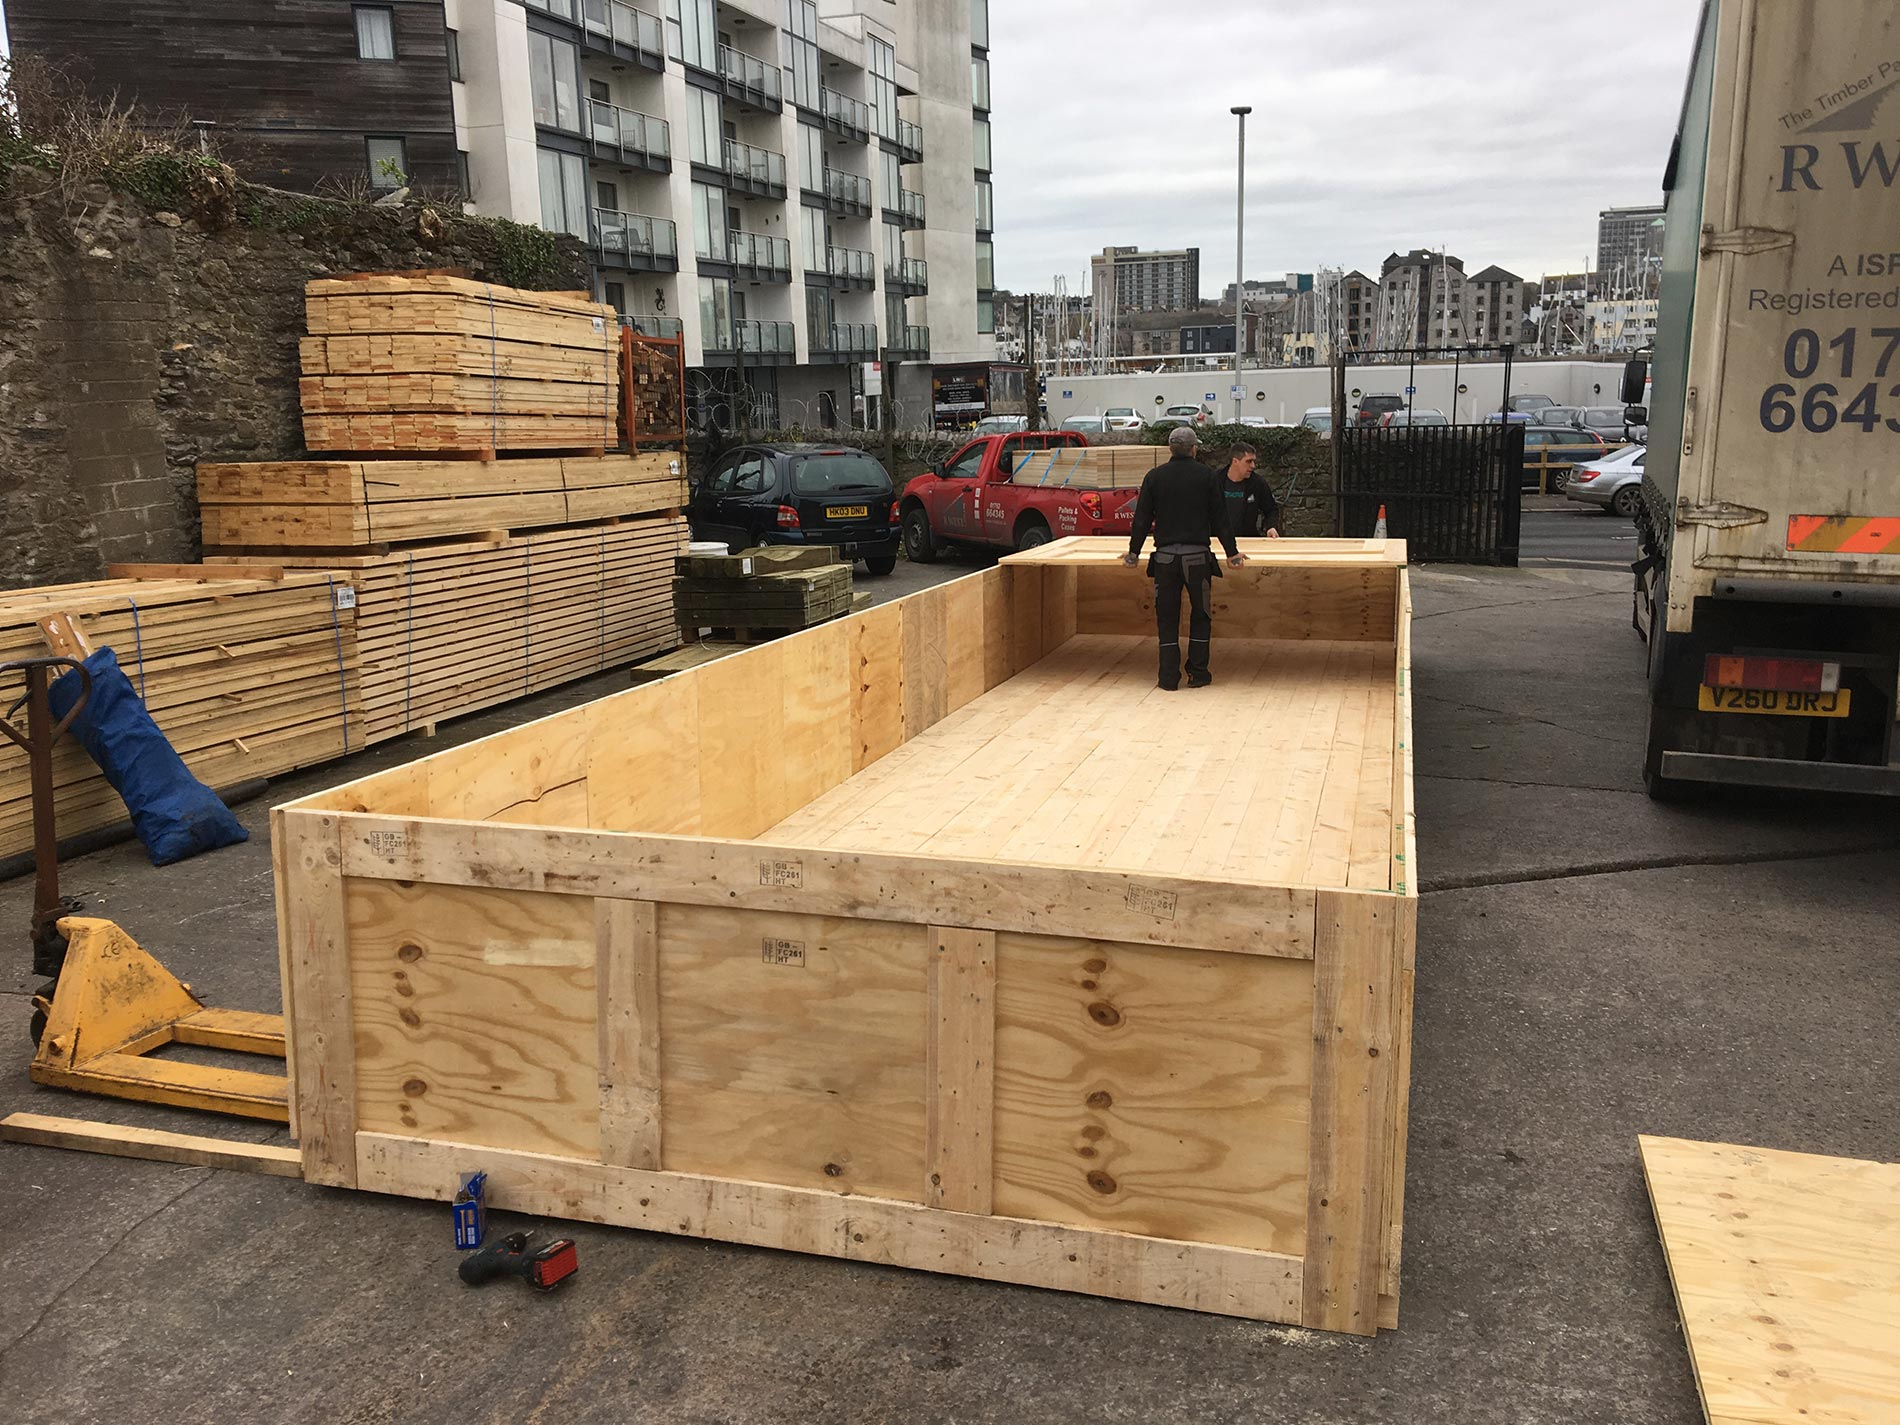 about us - who we are - images of our timber packaging solutions work - R.West & Son